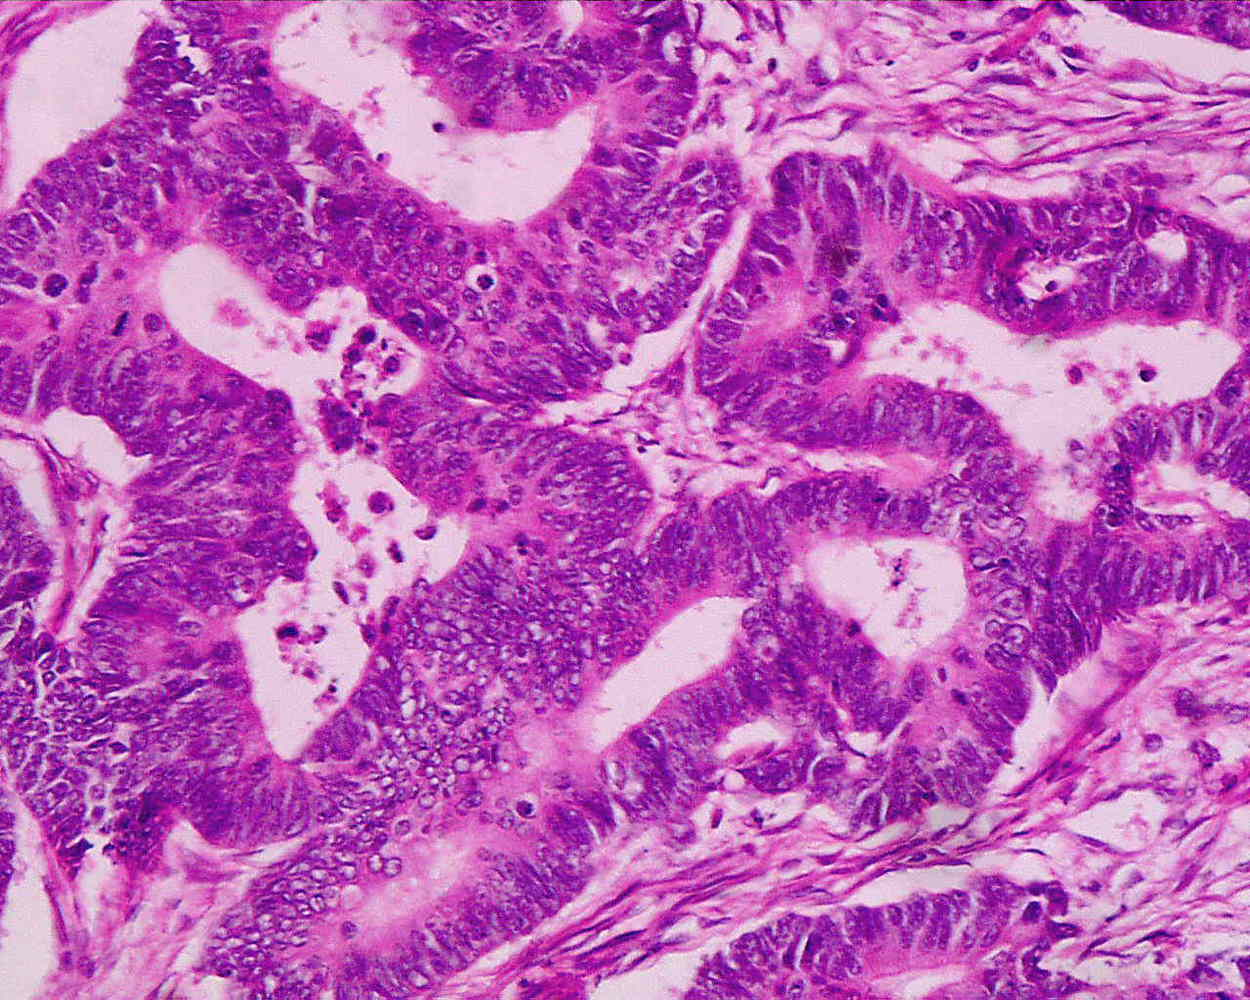 Adenocarcinoma highly diffrerentiaded from the rectum